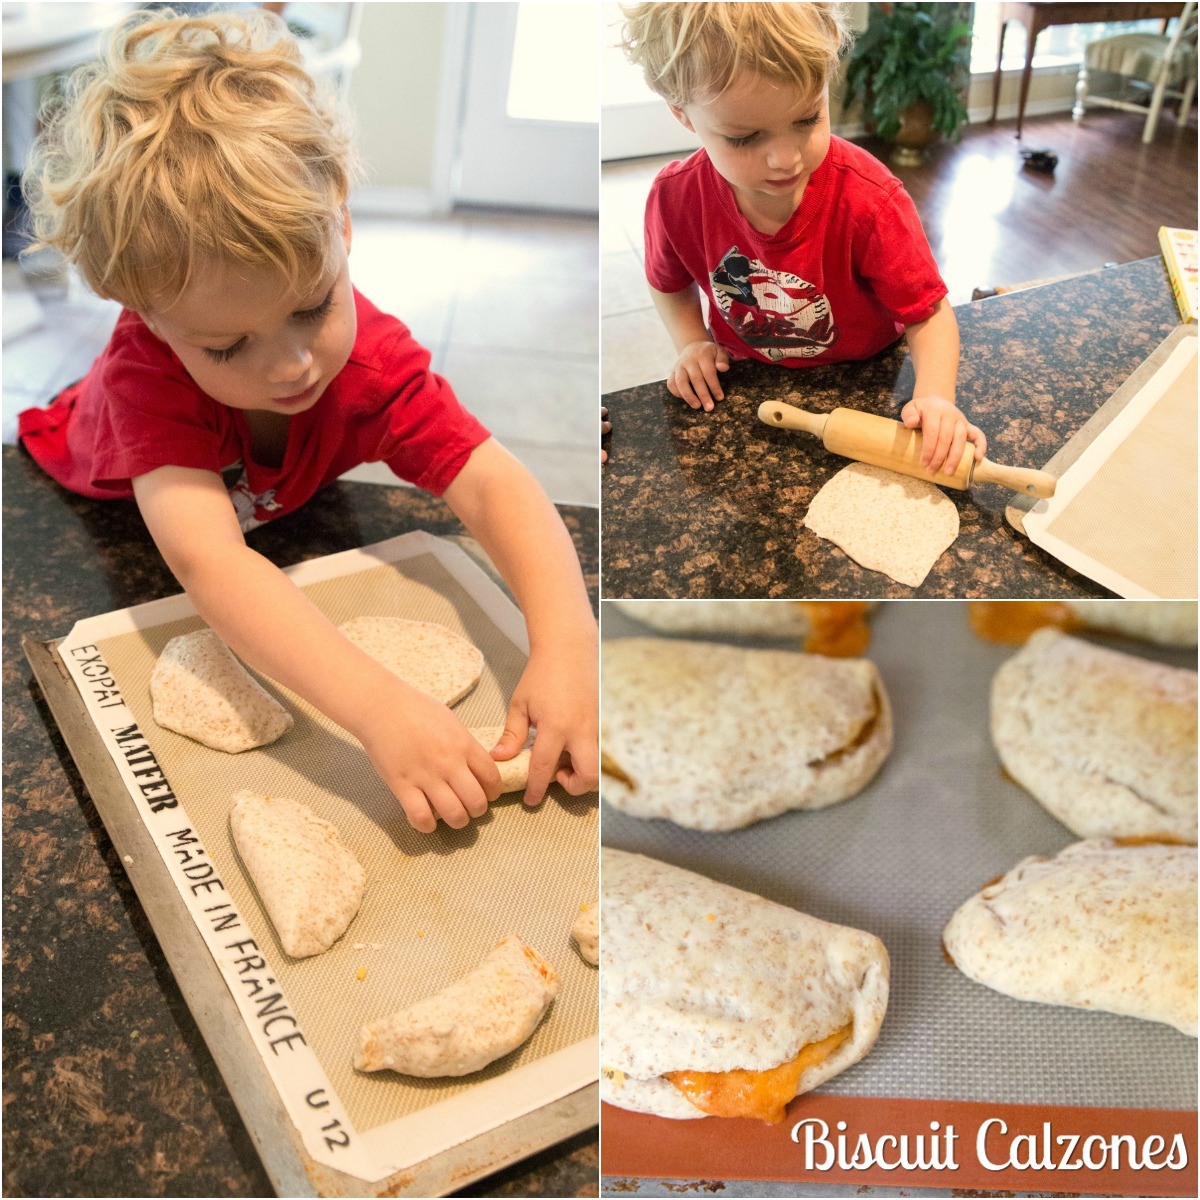 Kid Friendly Recipe for Biscuit Calzones